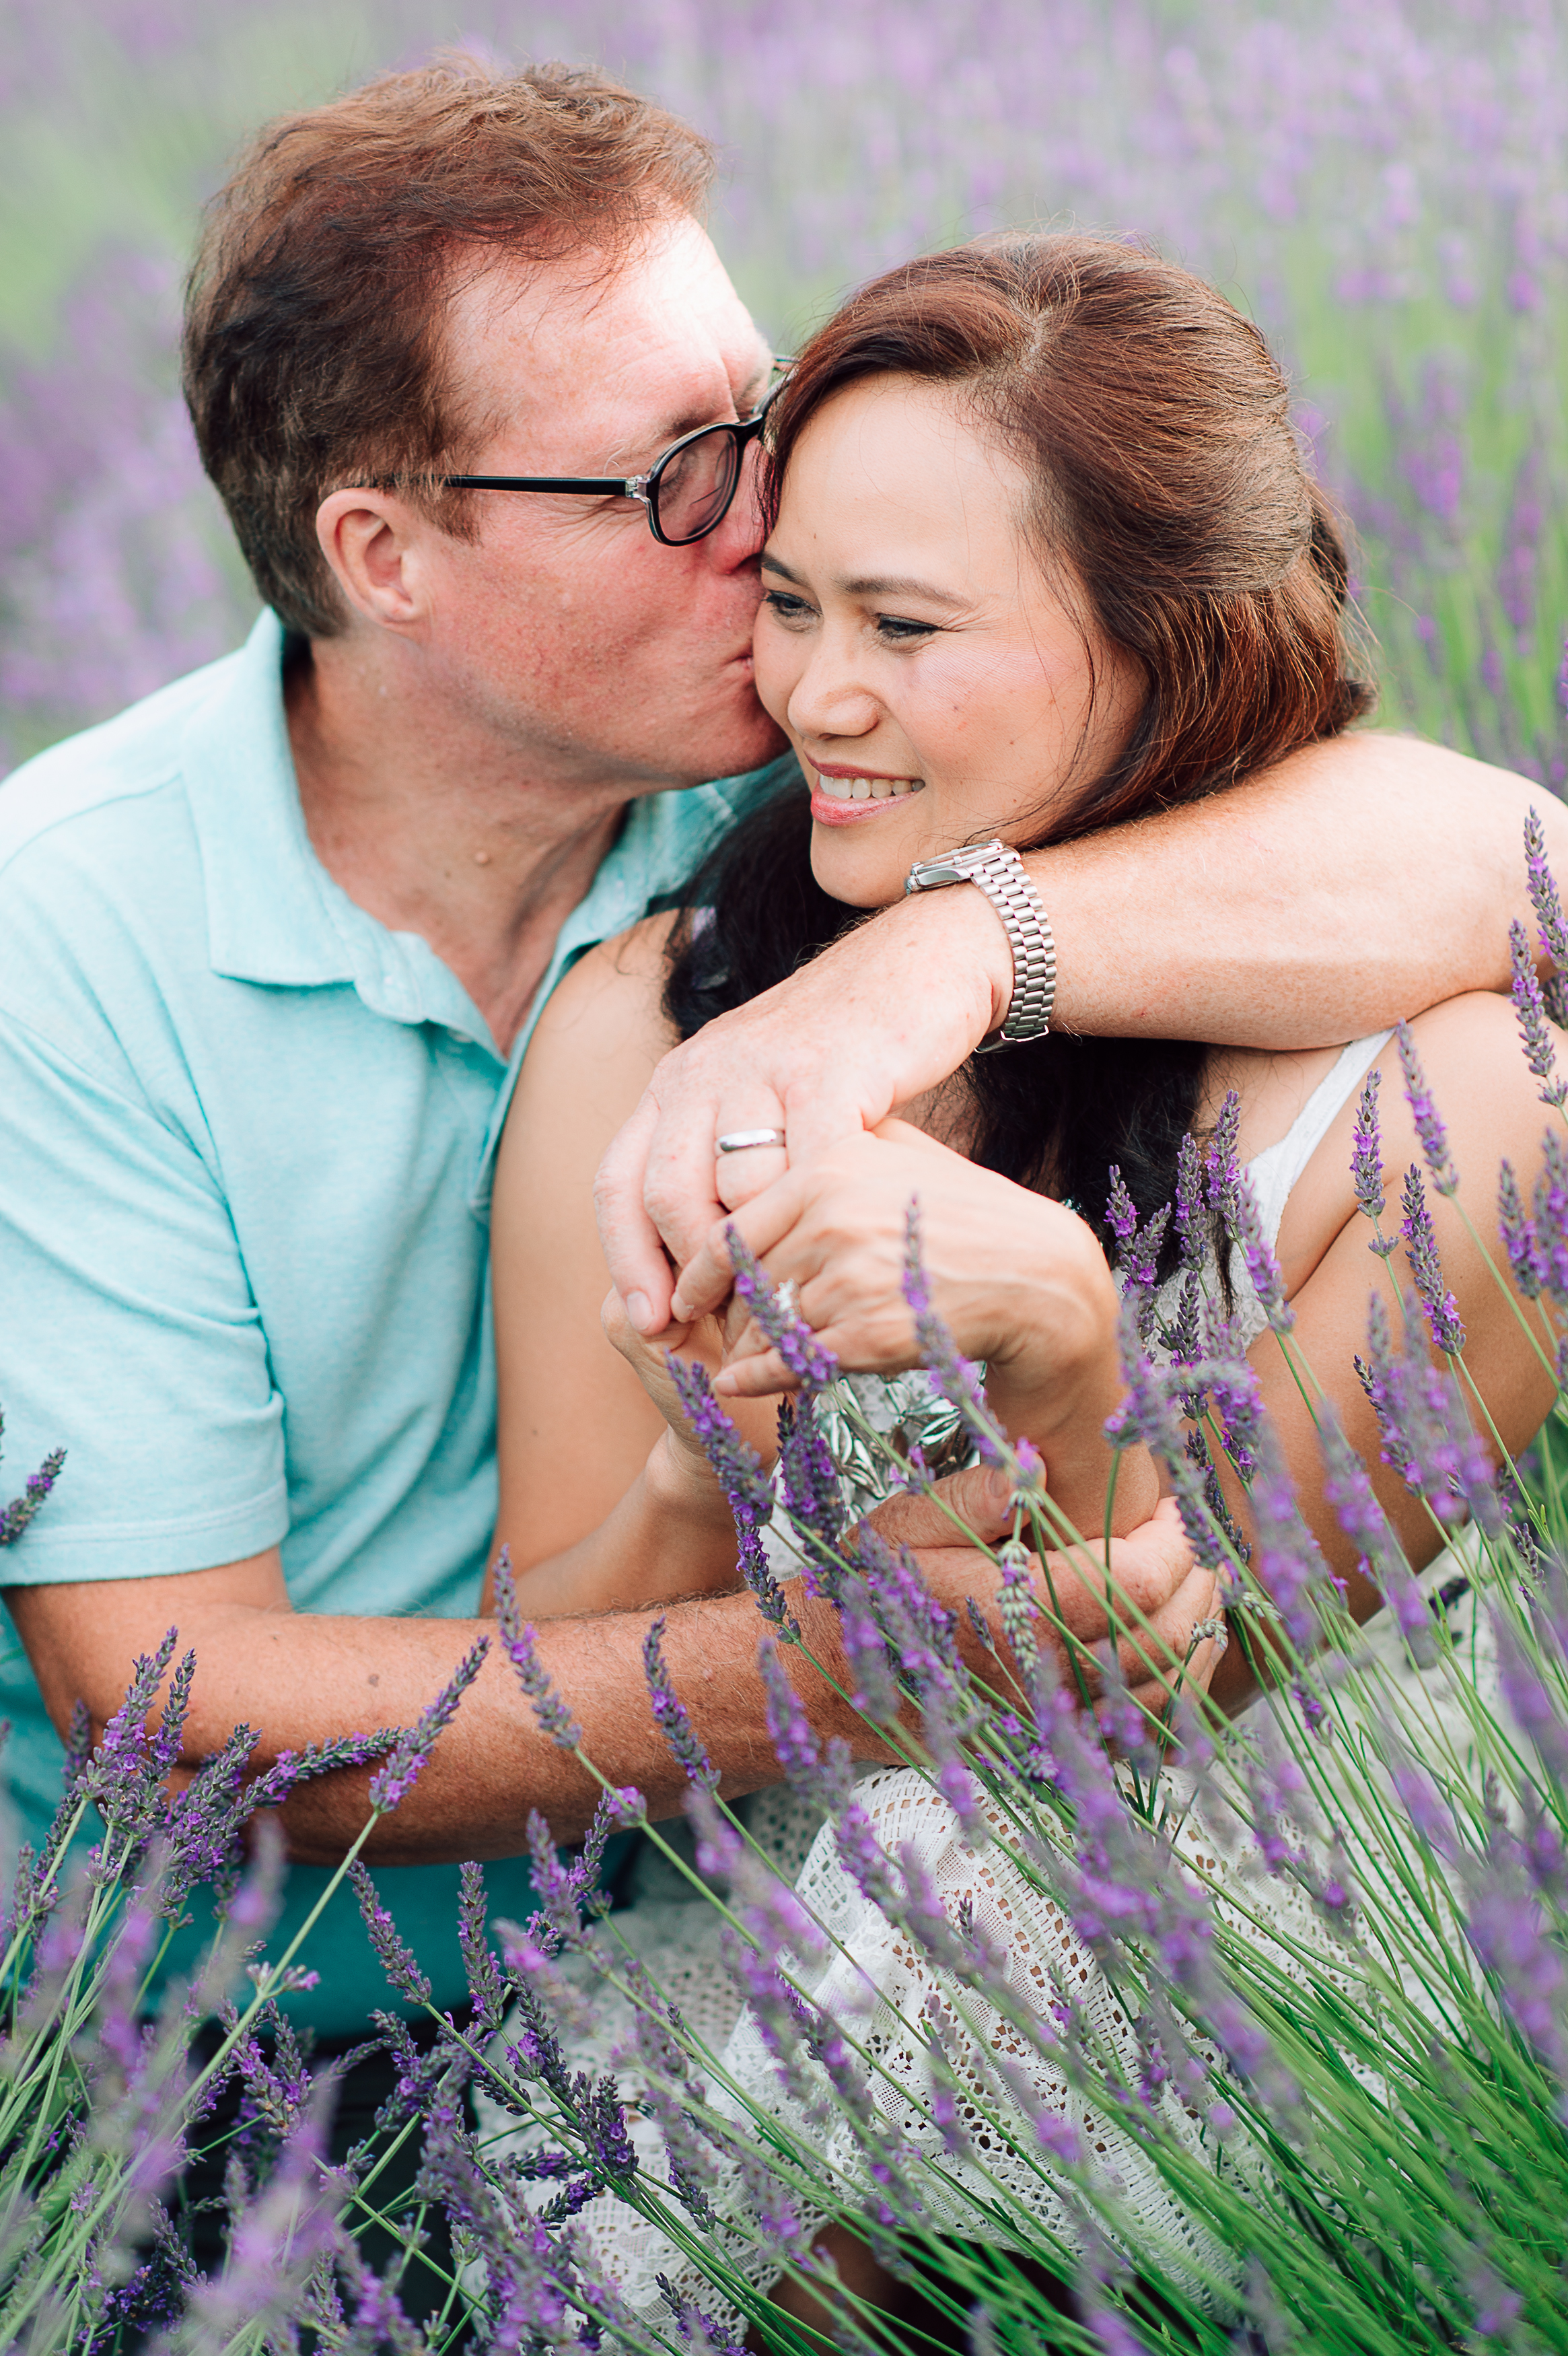 engagement_lavenderfield_youseephotography_LidiaOtto (31).jpg